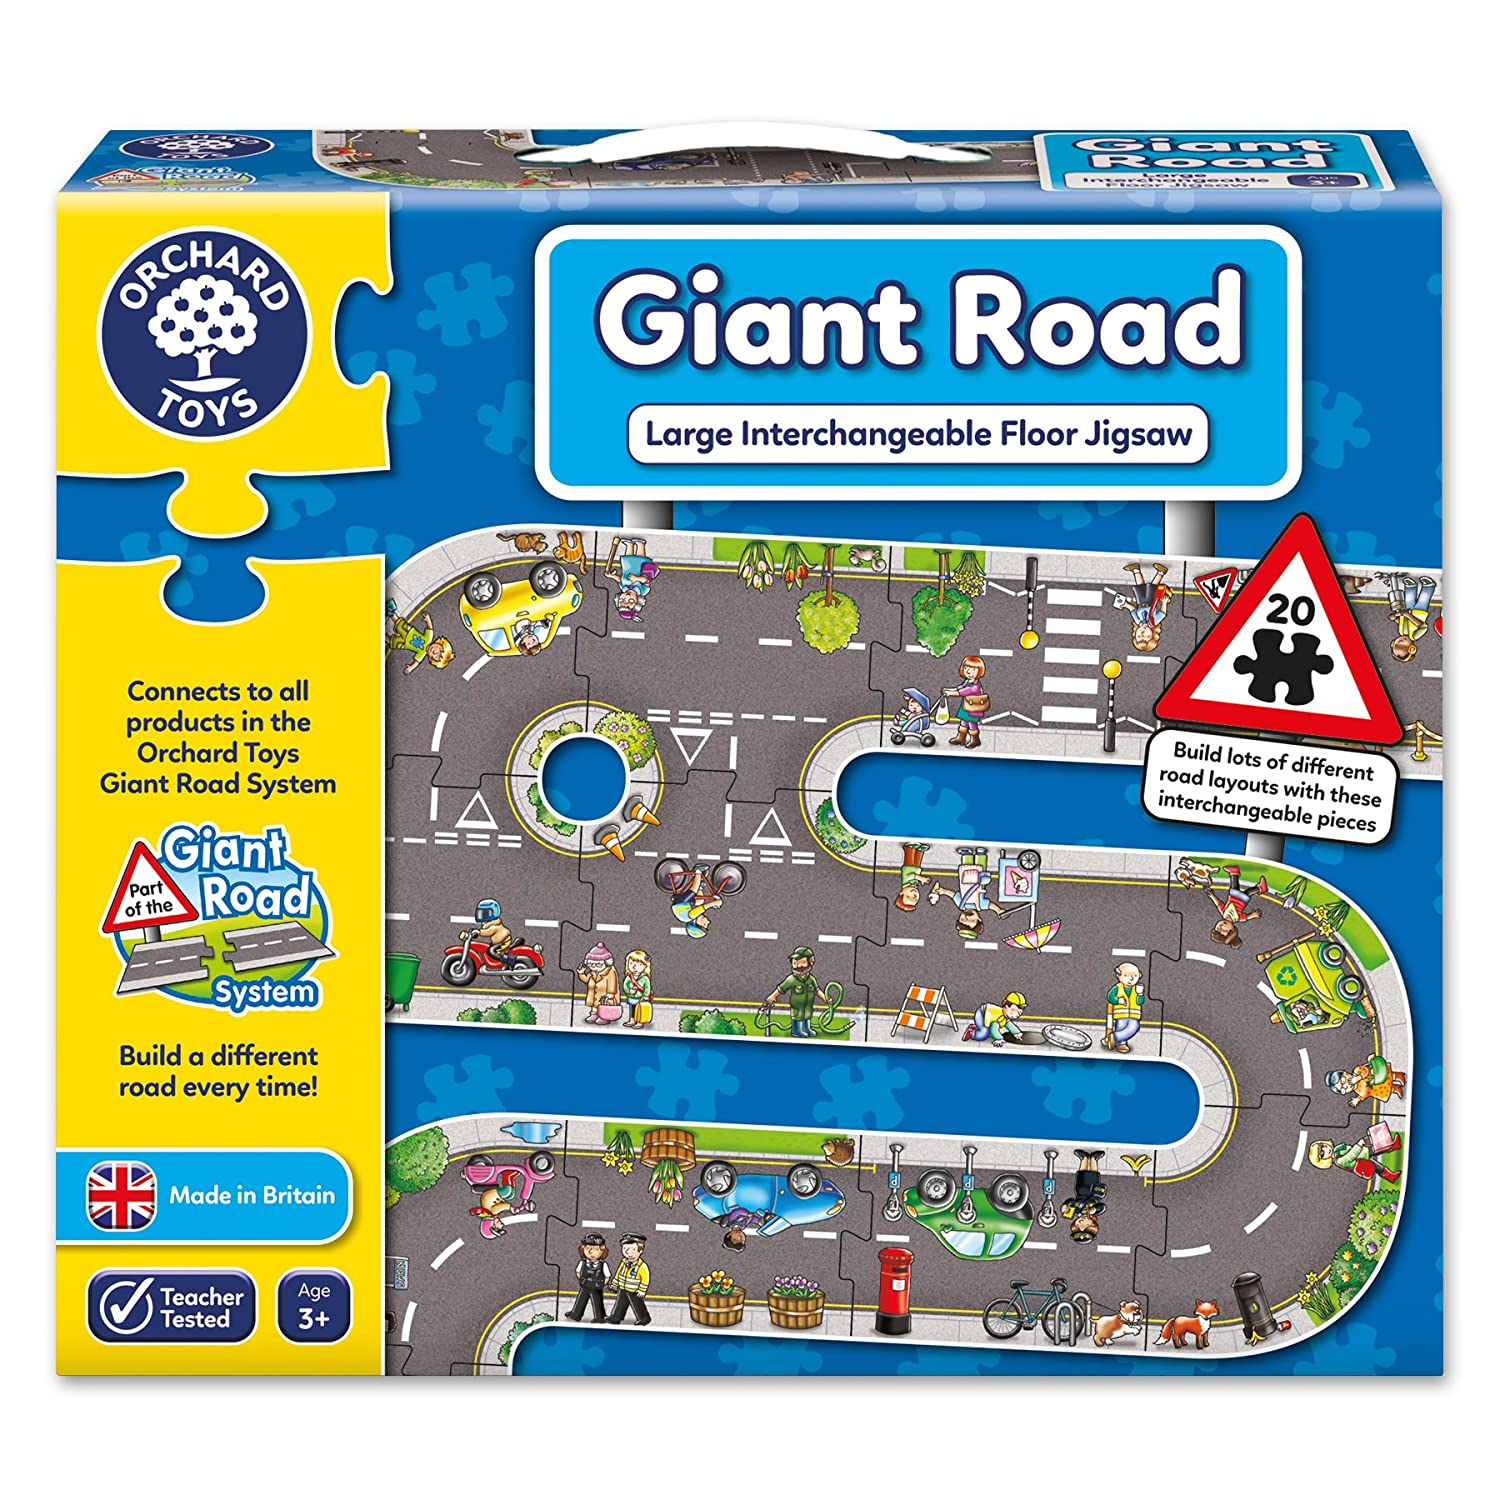 Giant Road Jigsaw Floor Puzzle (20 Piece)